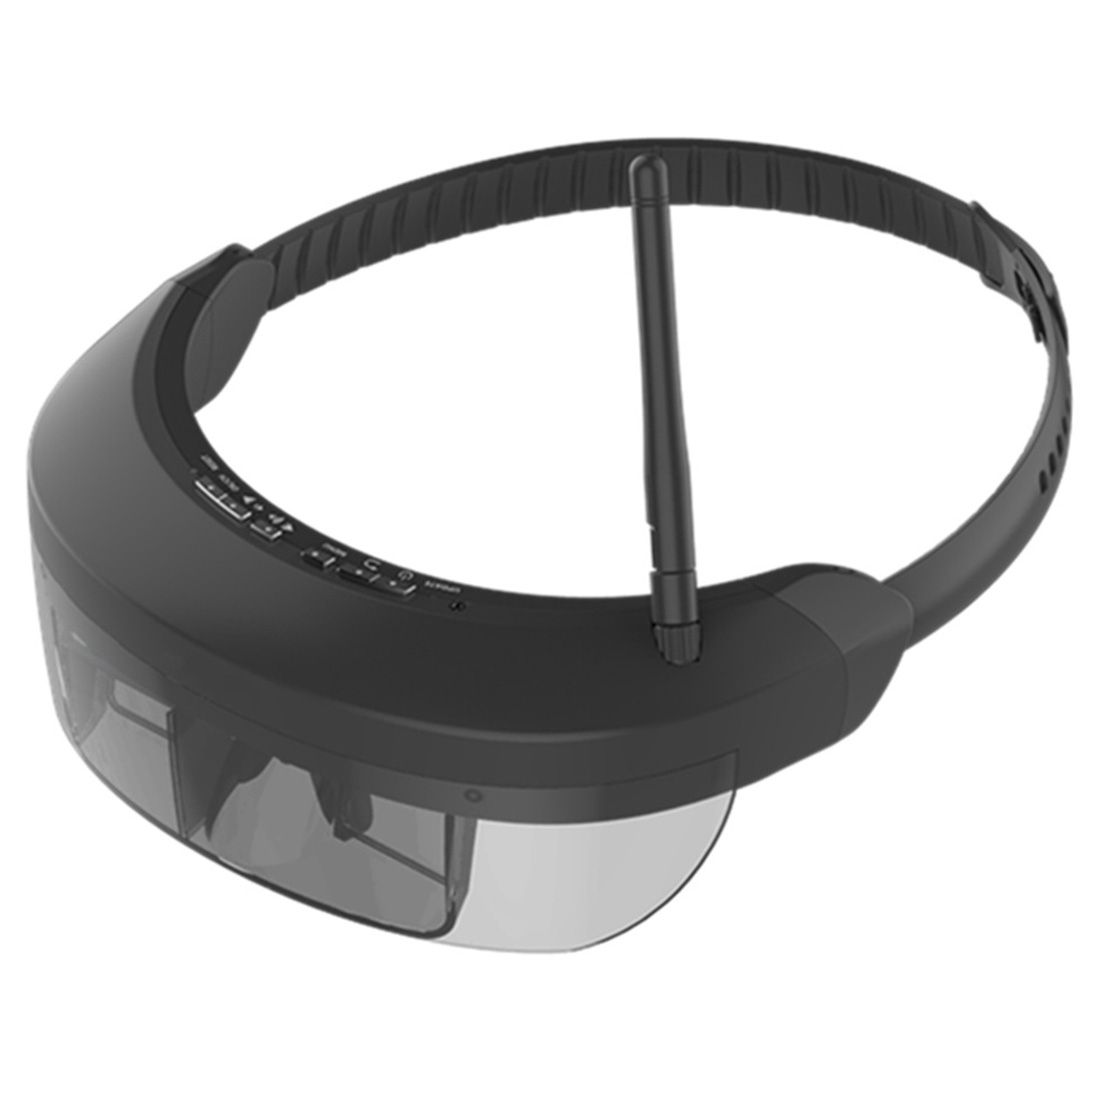 Wireless FPV Goggles 3D Video Glasses Vision-730S with 5.8G 40CH 98 inch Display Private Virtual Theater for FPV Quadcopter